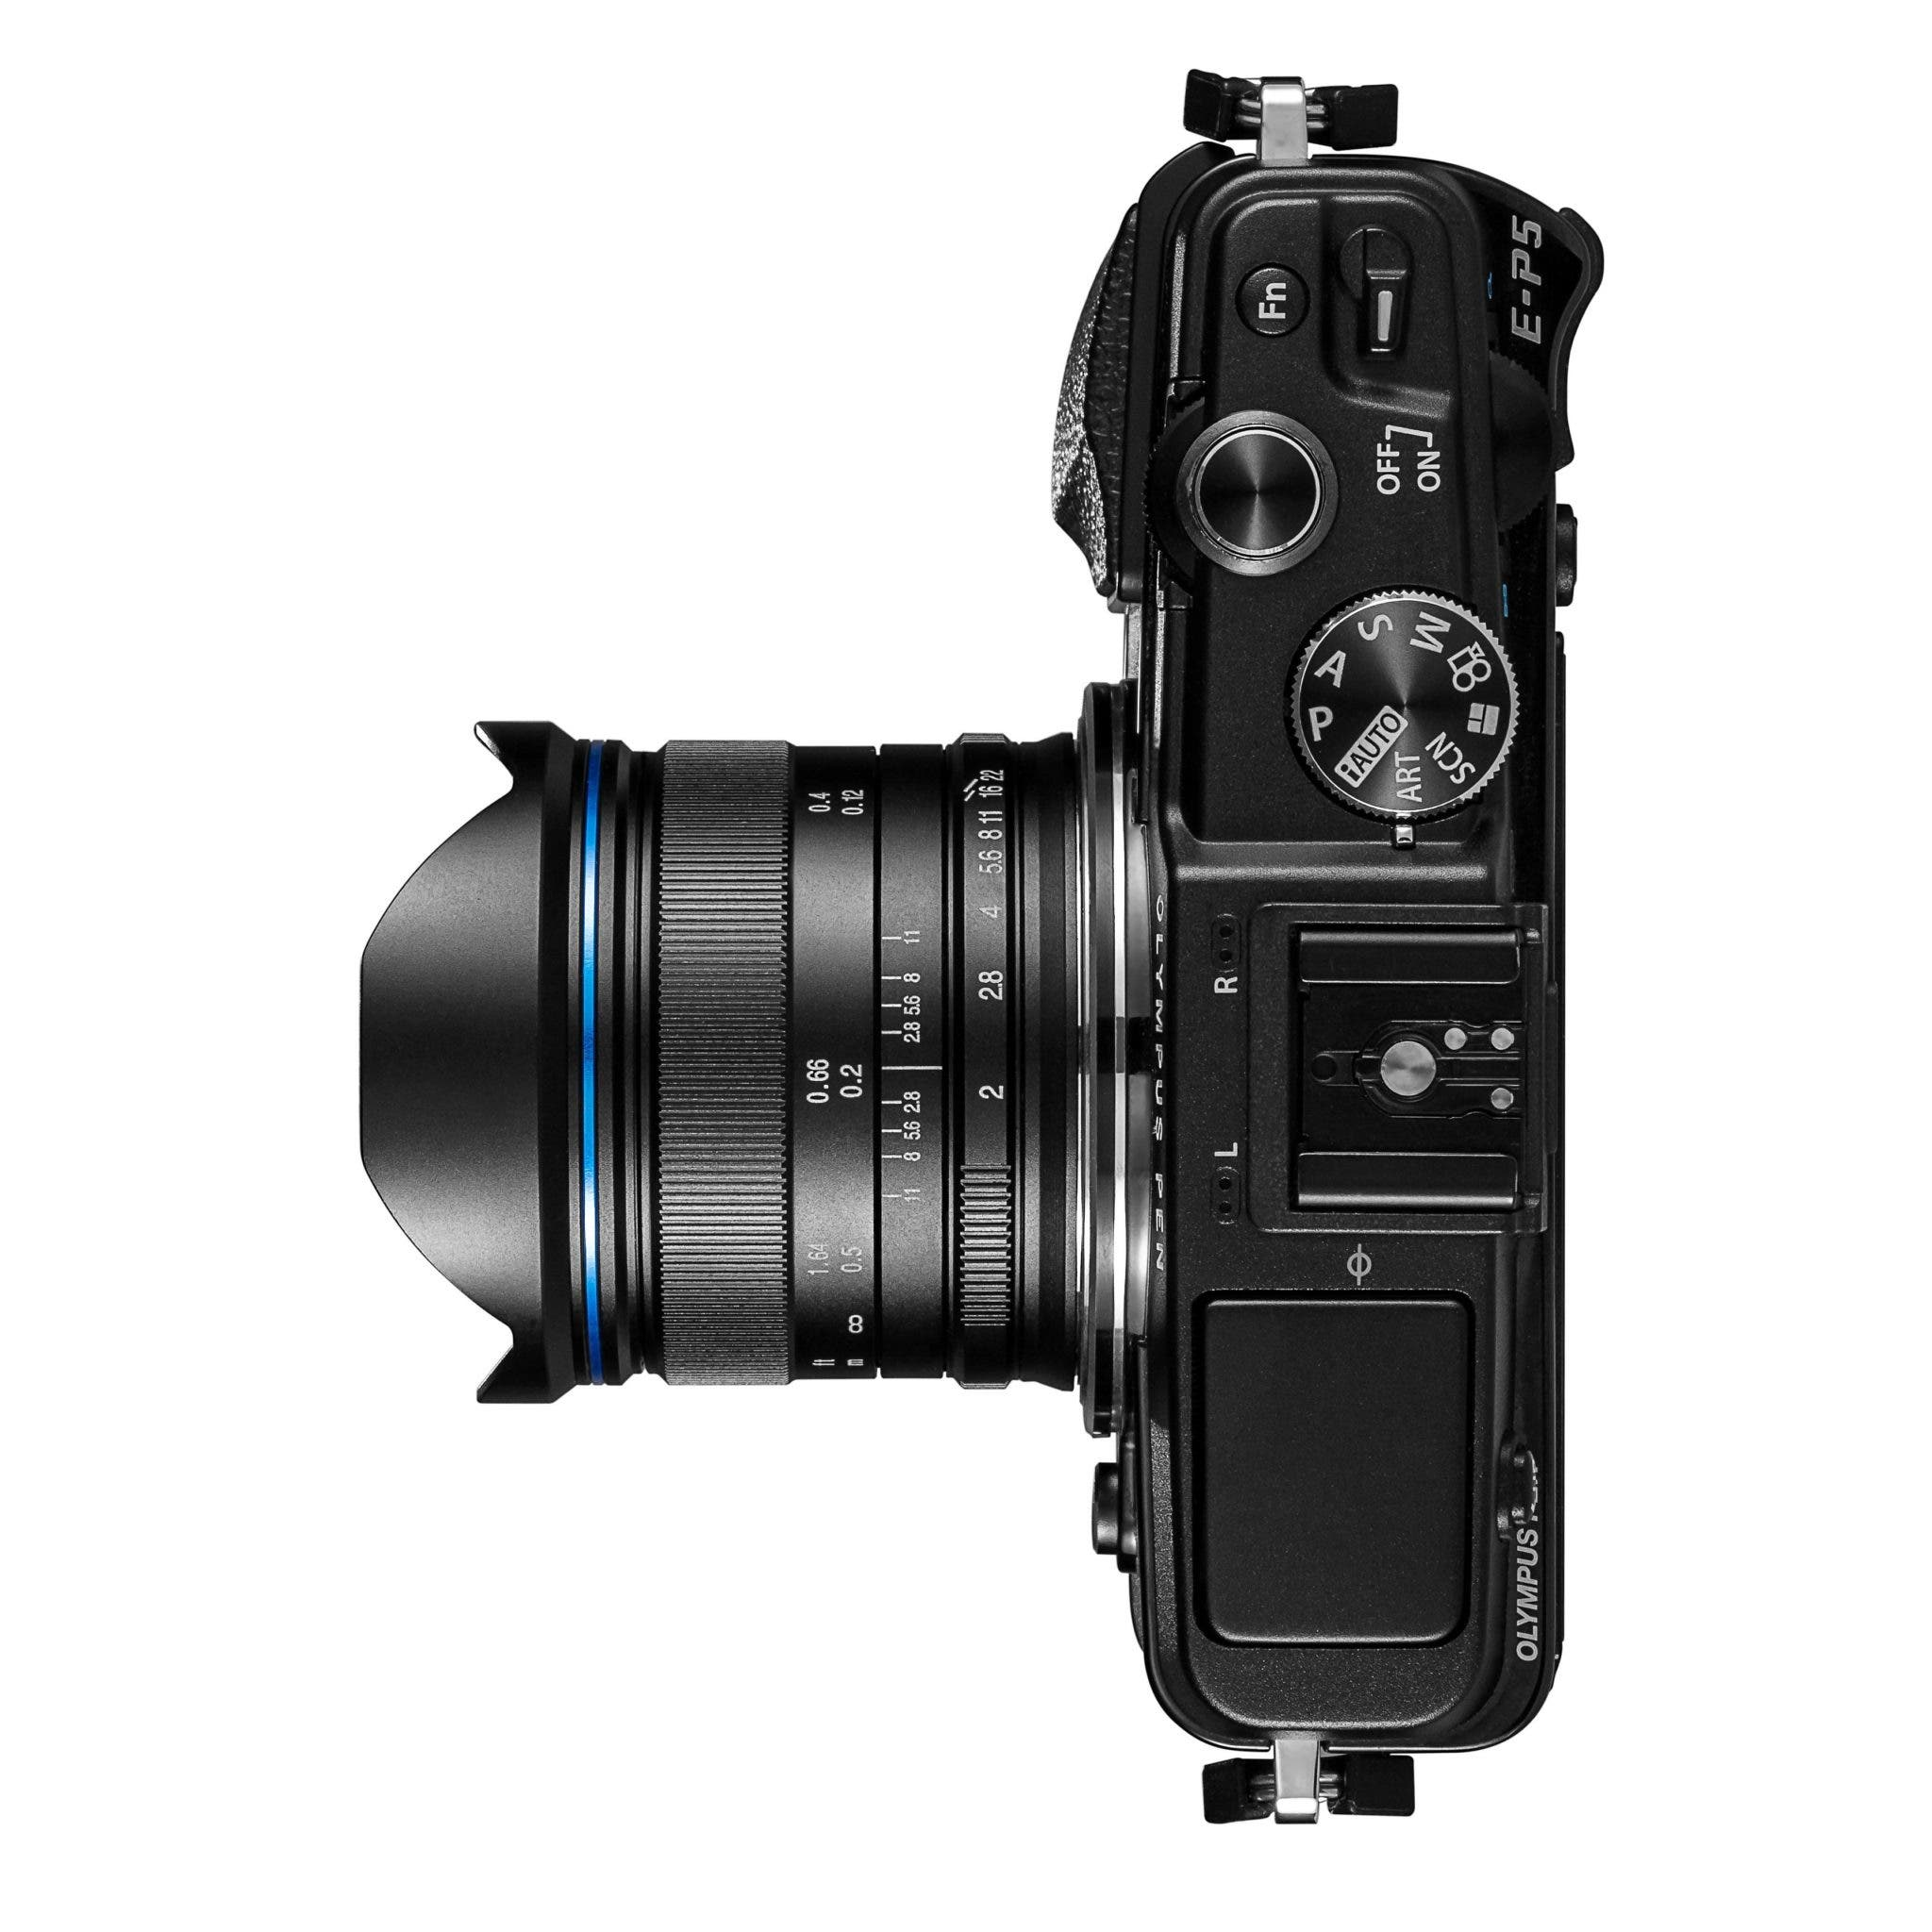 The Venus Optics Laowa 7.5mm f2 Gives Your Micro Four Thirds Camera a Wide Angle and Fast Aperture